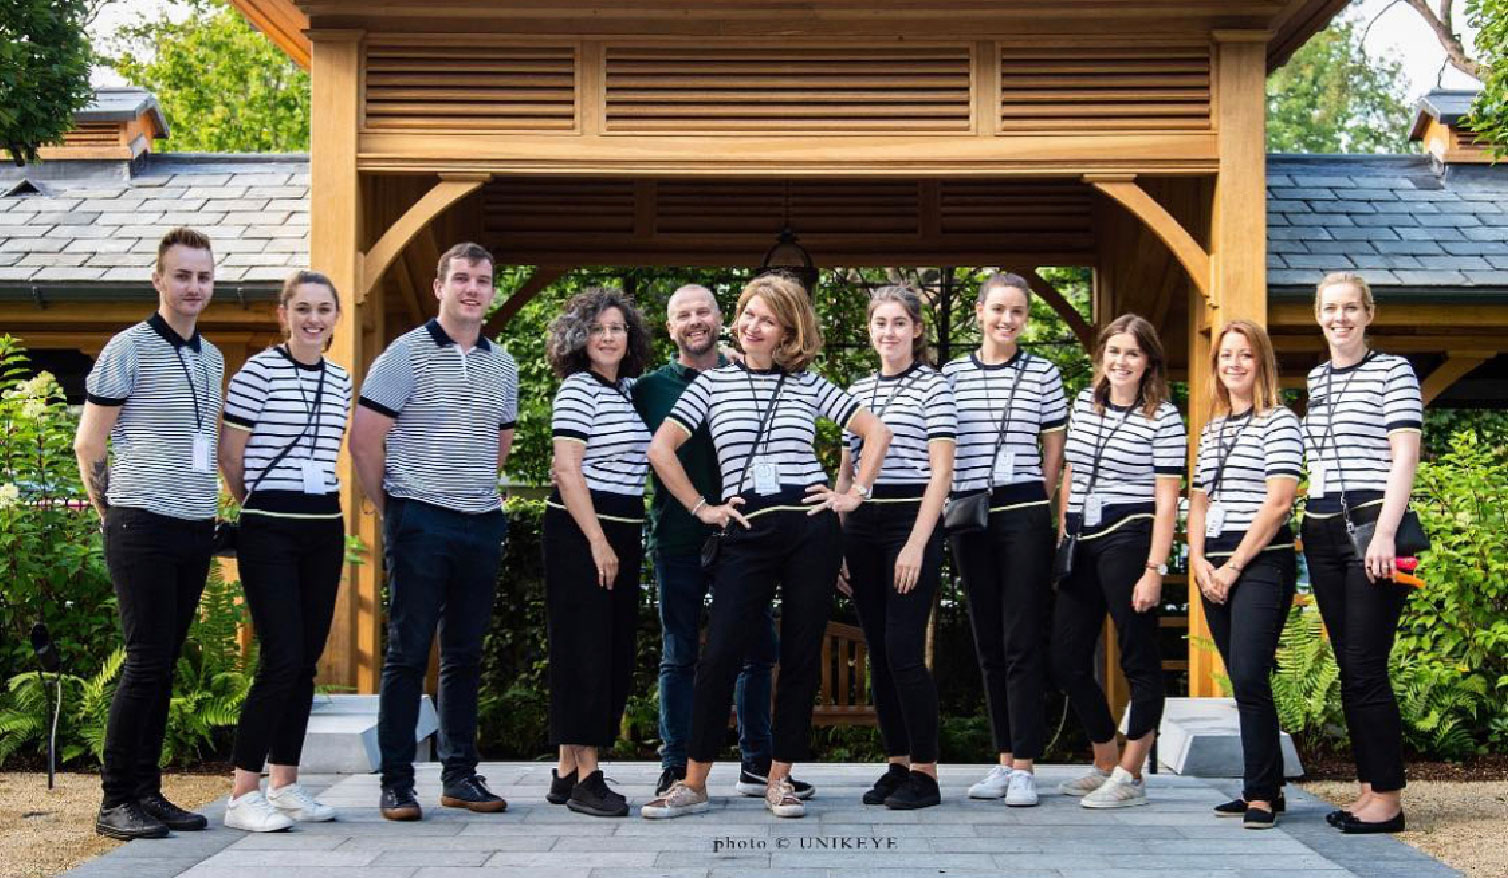 Tara Fay and her team dressed in striped tops and black pants.